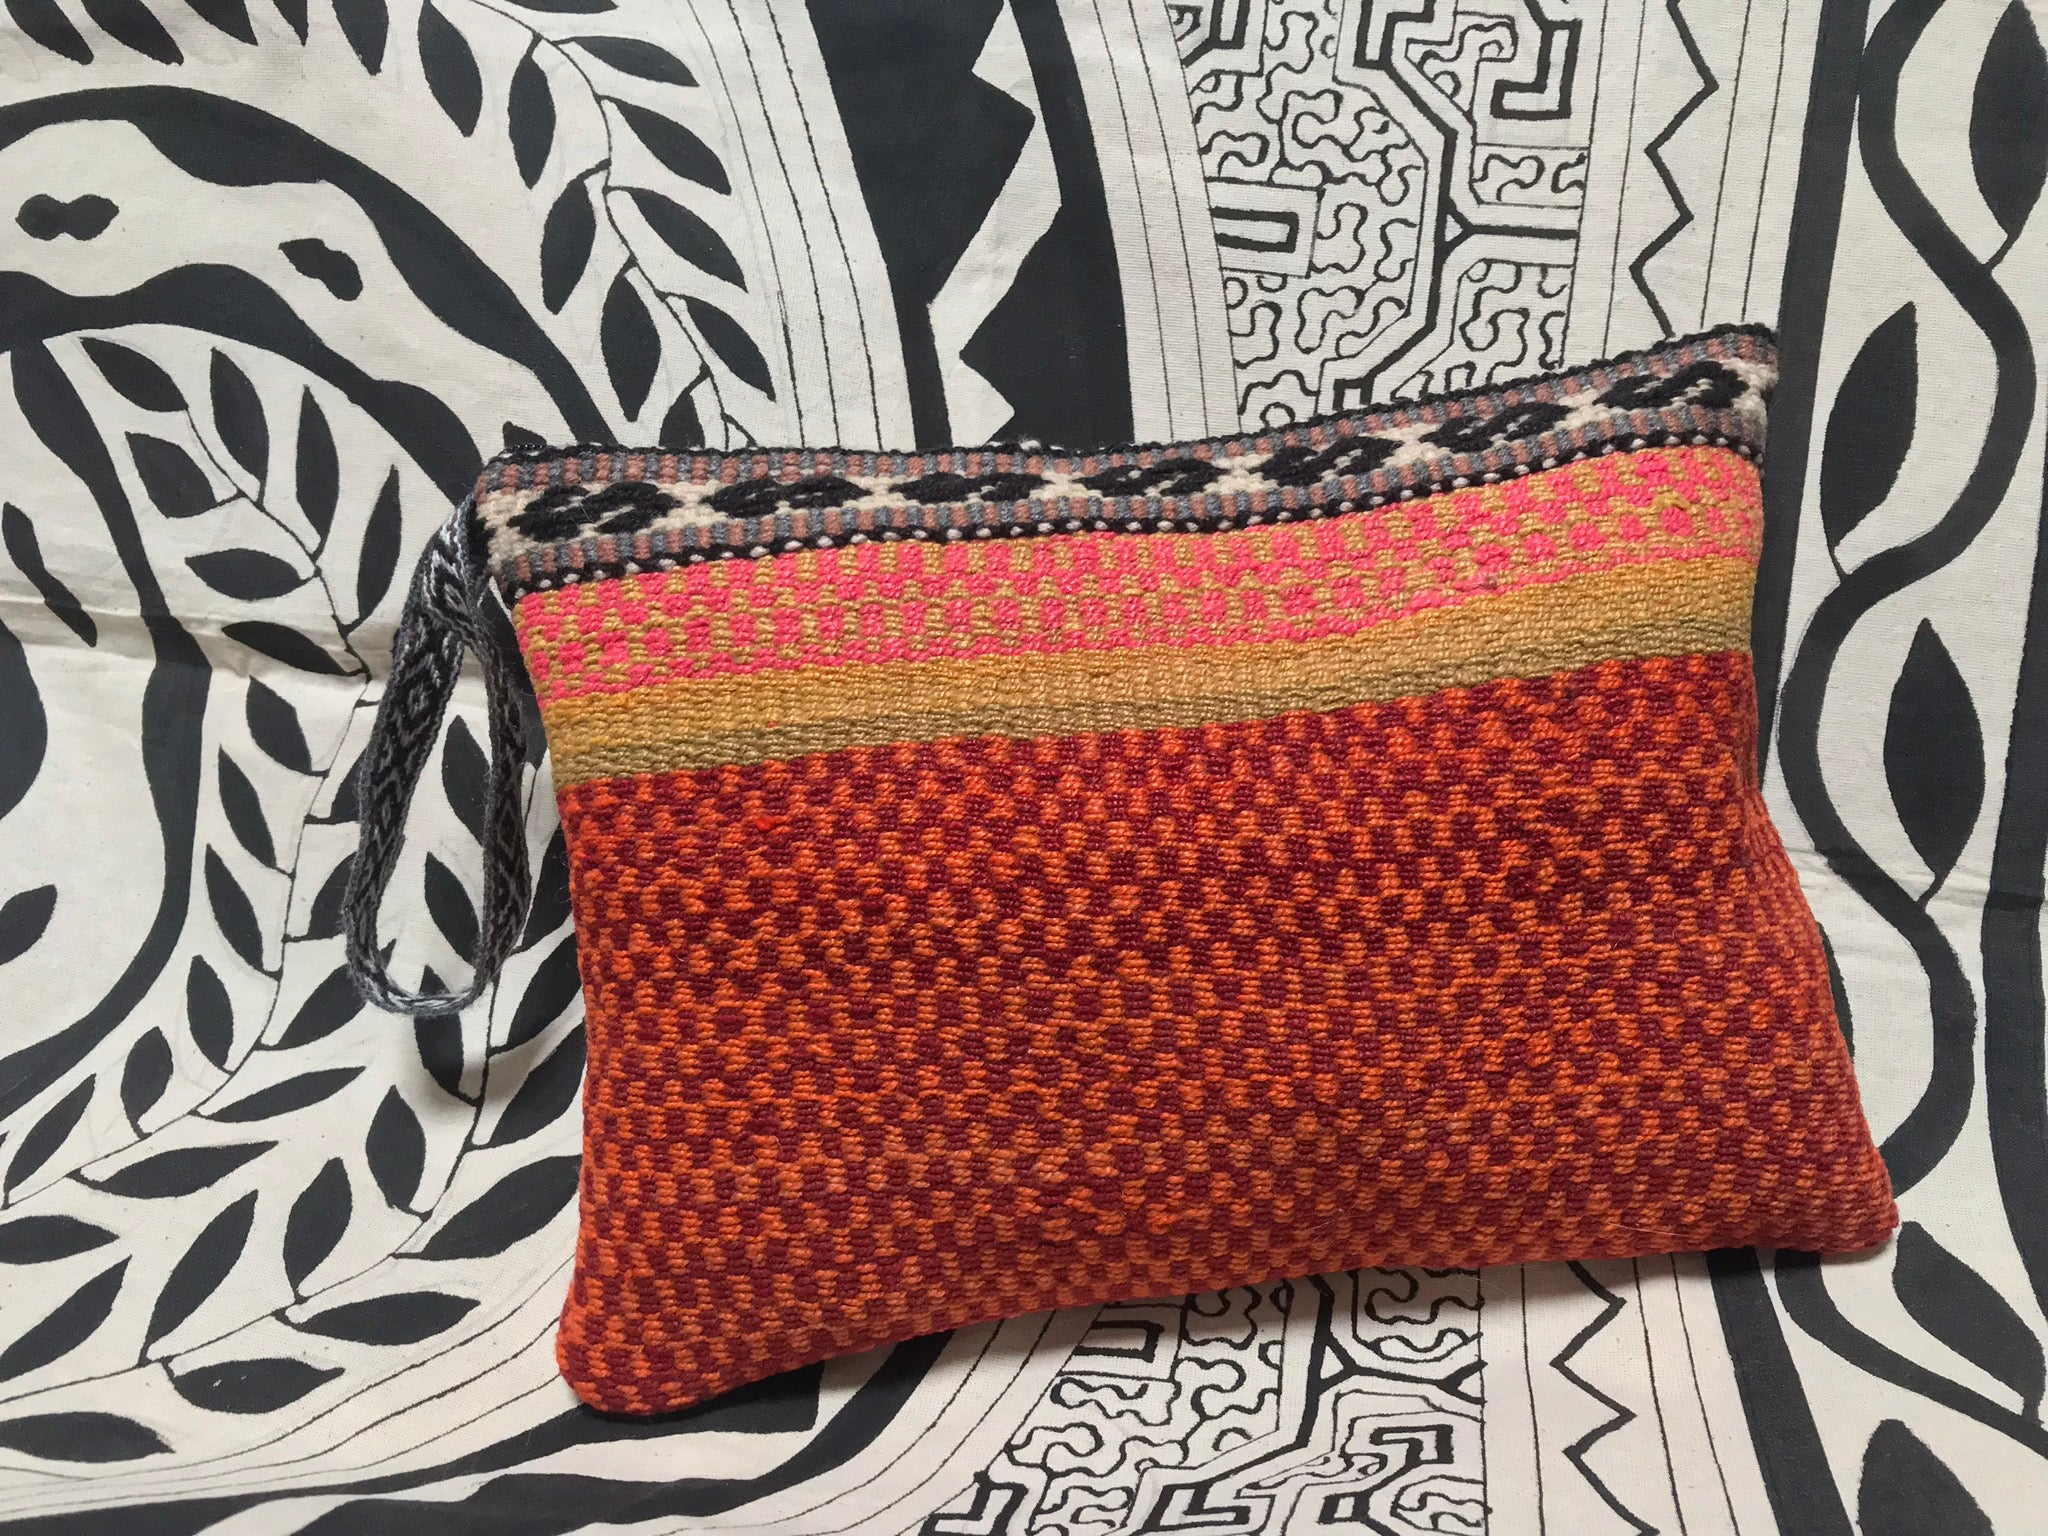 Large Fair Trade Upcycled Andean Woven Pouch